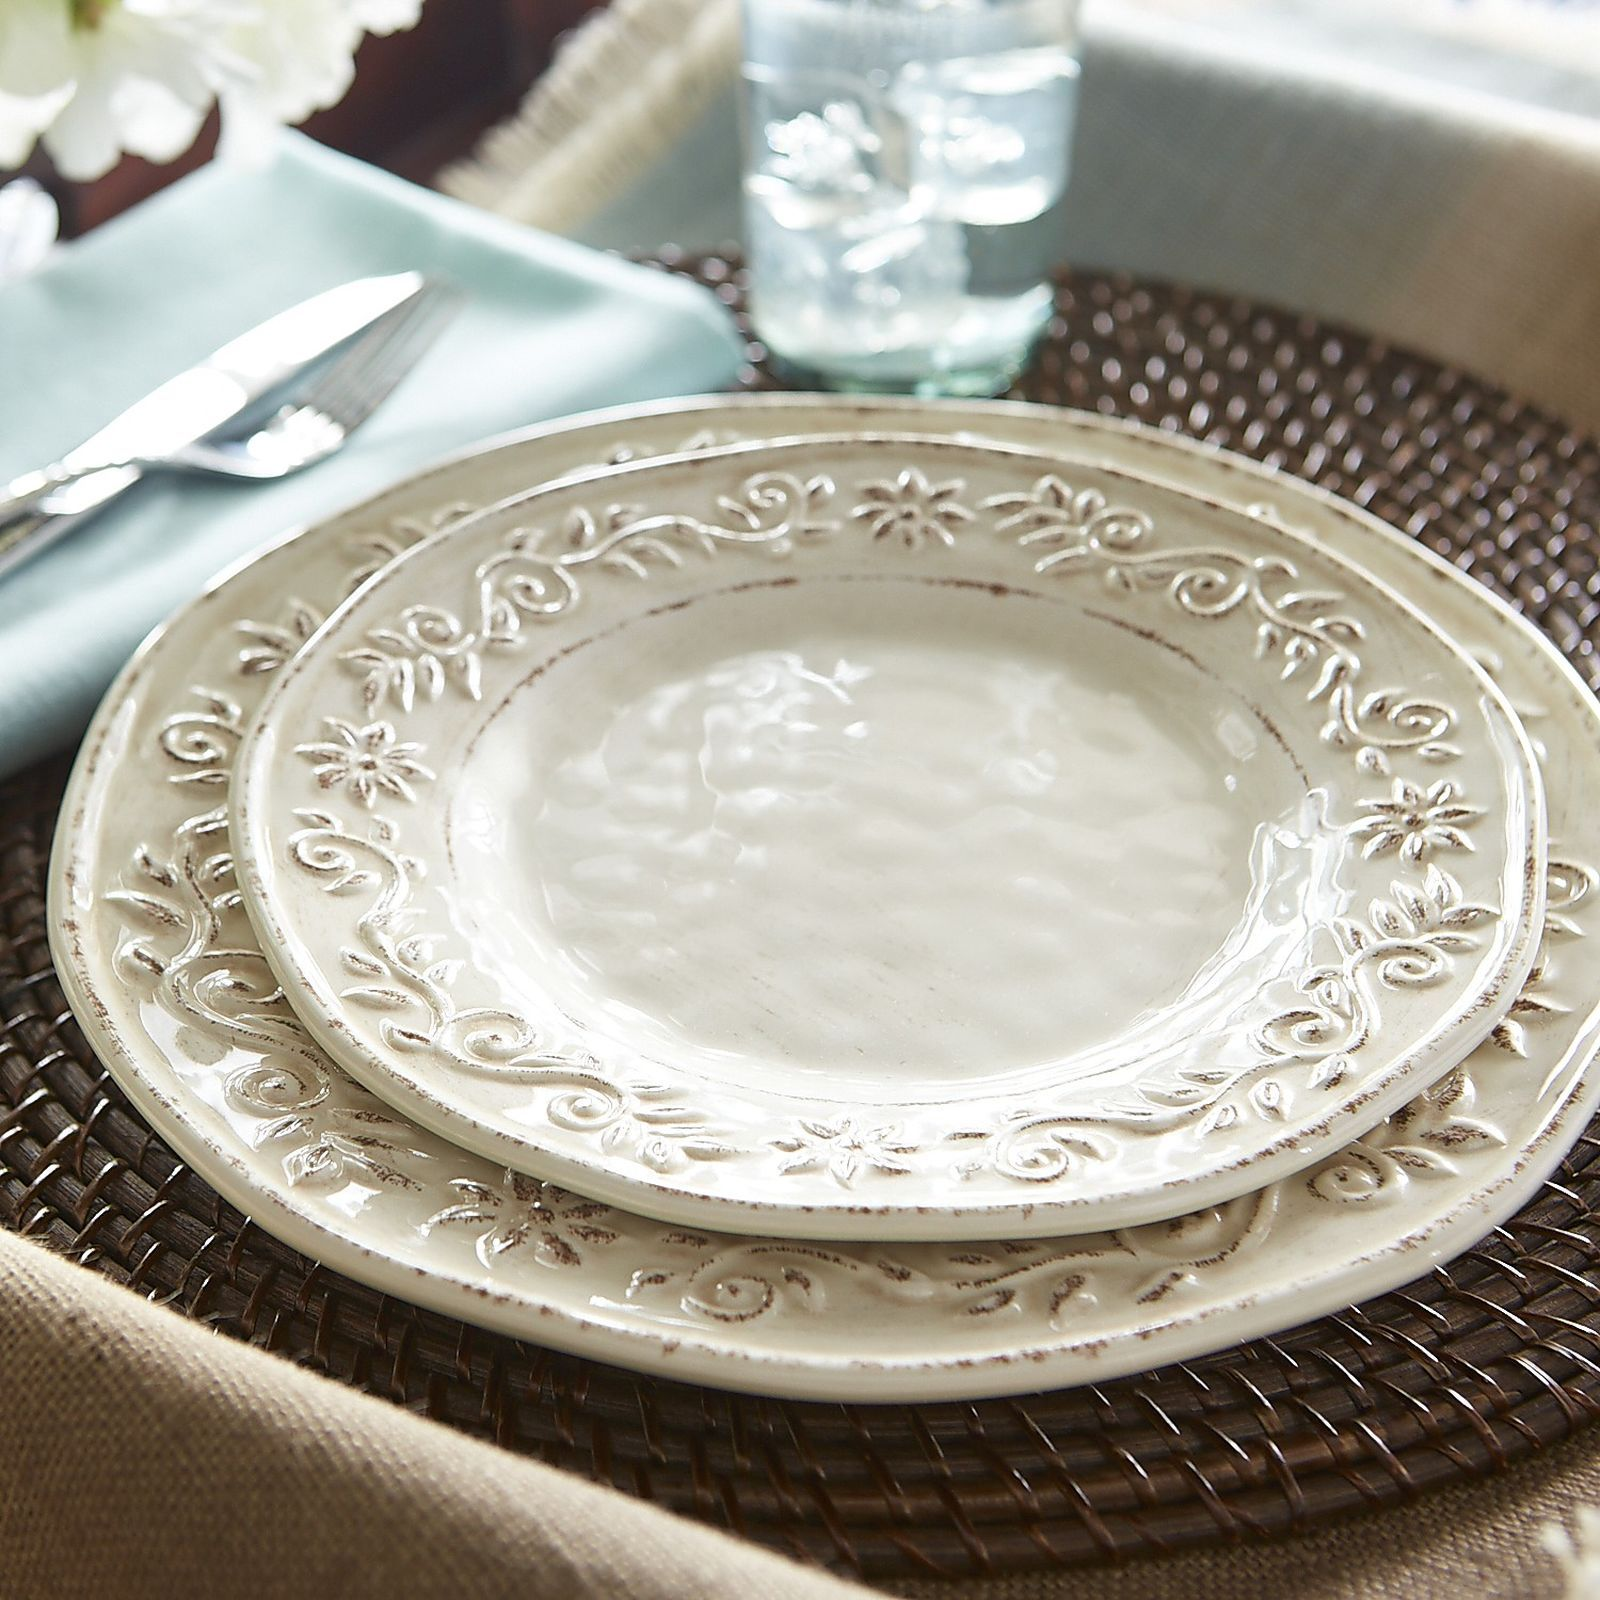 Classic Italian style meets modern melamine. Featuring a distressed embossed pattern these classic beauties are ideal for any setting under the sun. & Classic Italian style meets modern melamine. Featuring a distressed ...